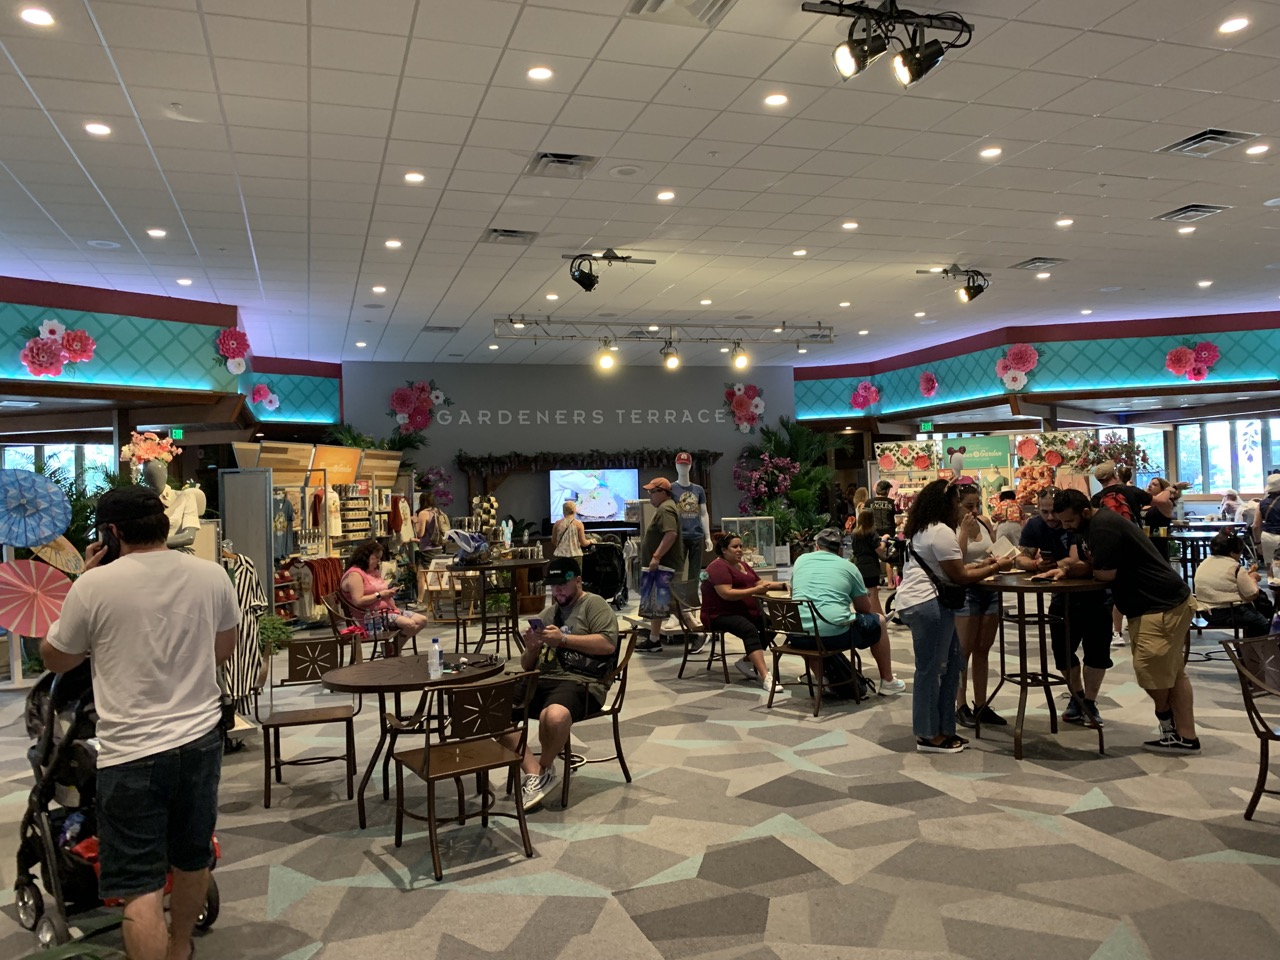 disney world trip report early summer 2019 day four 22 gardeners terrace.jpeg